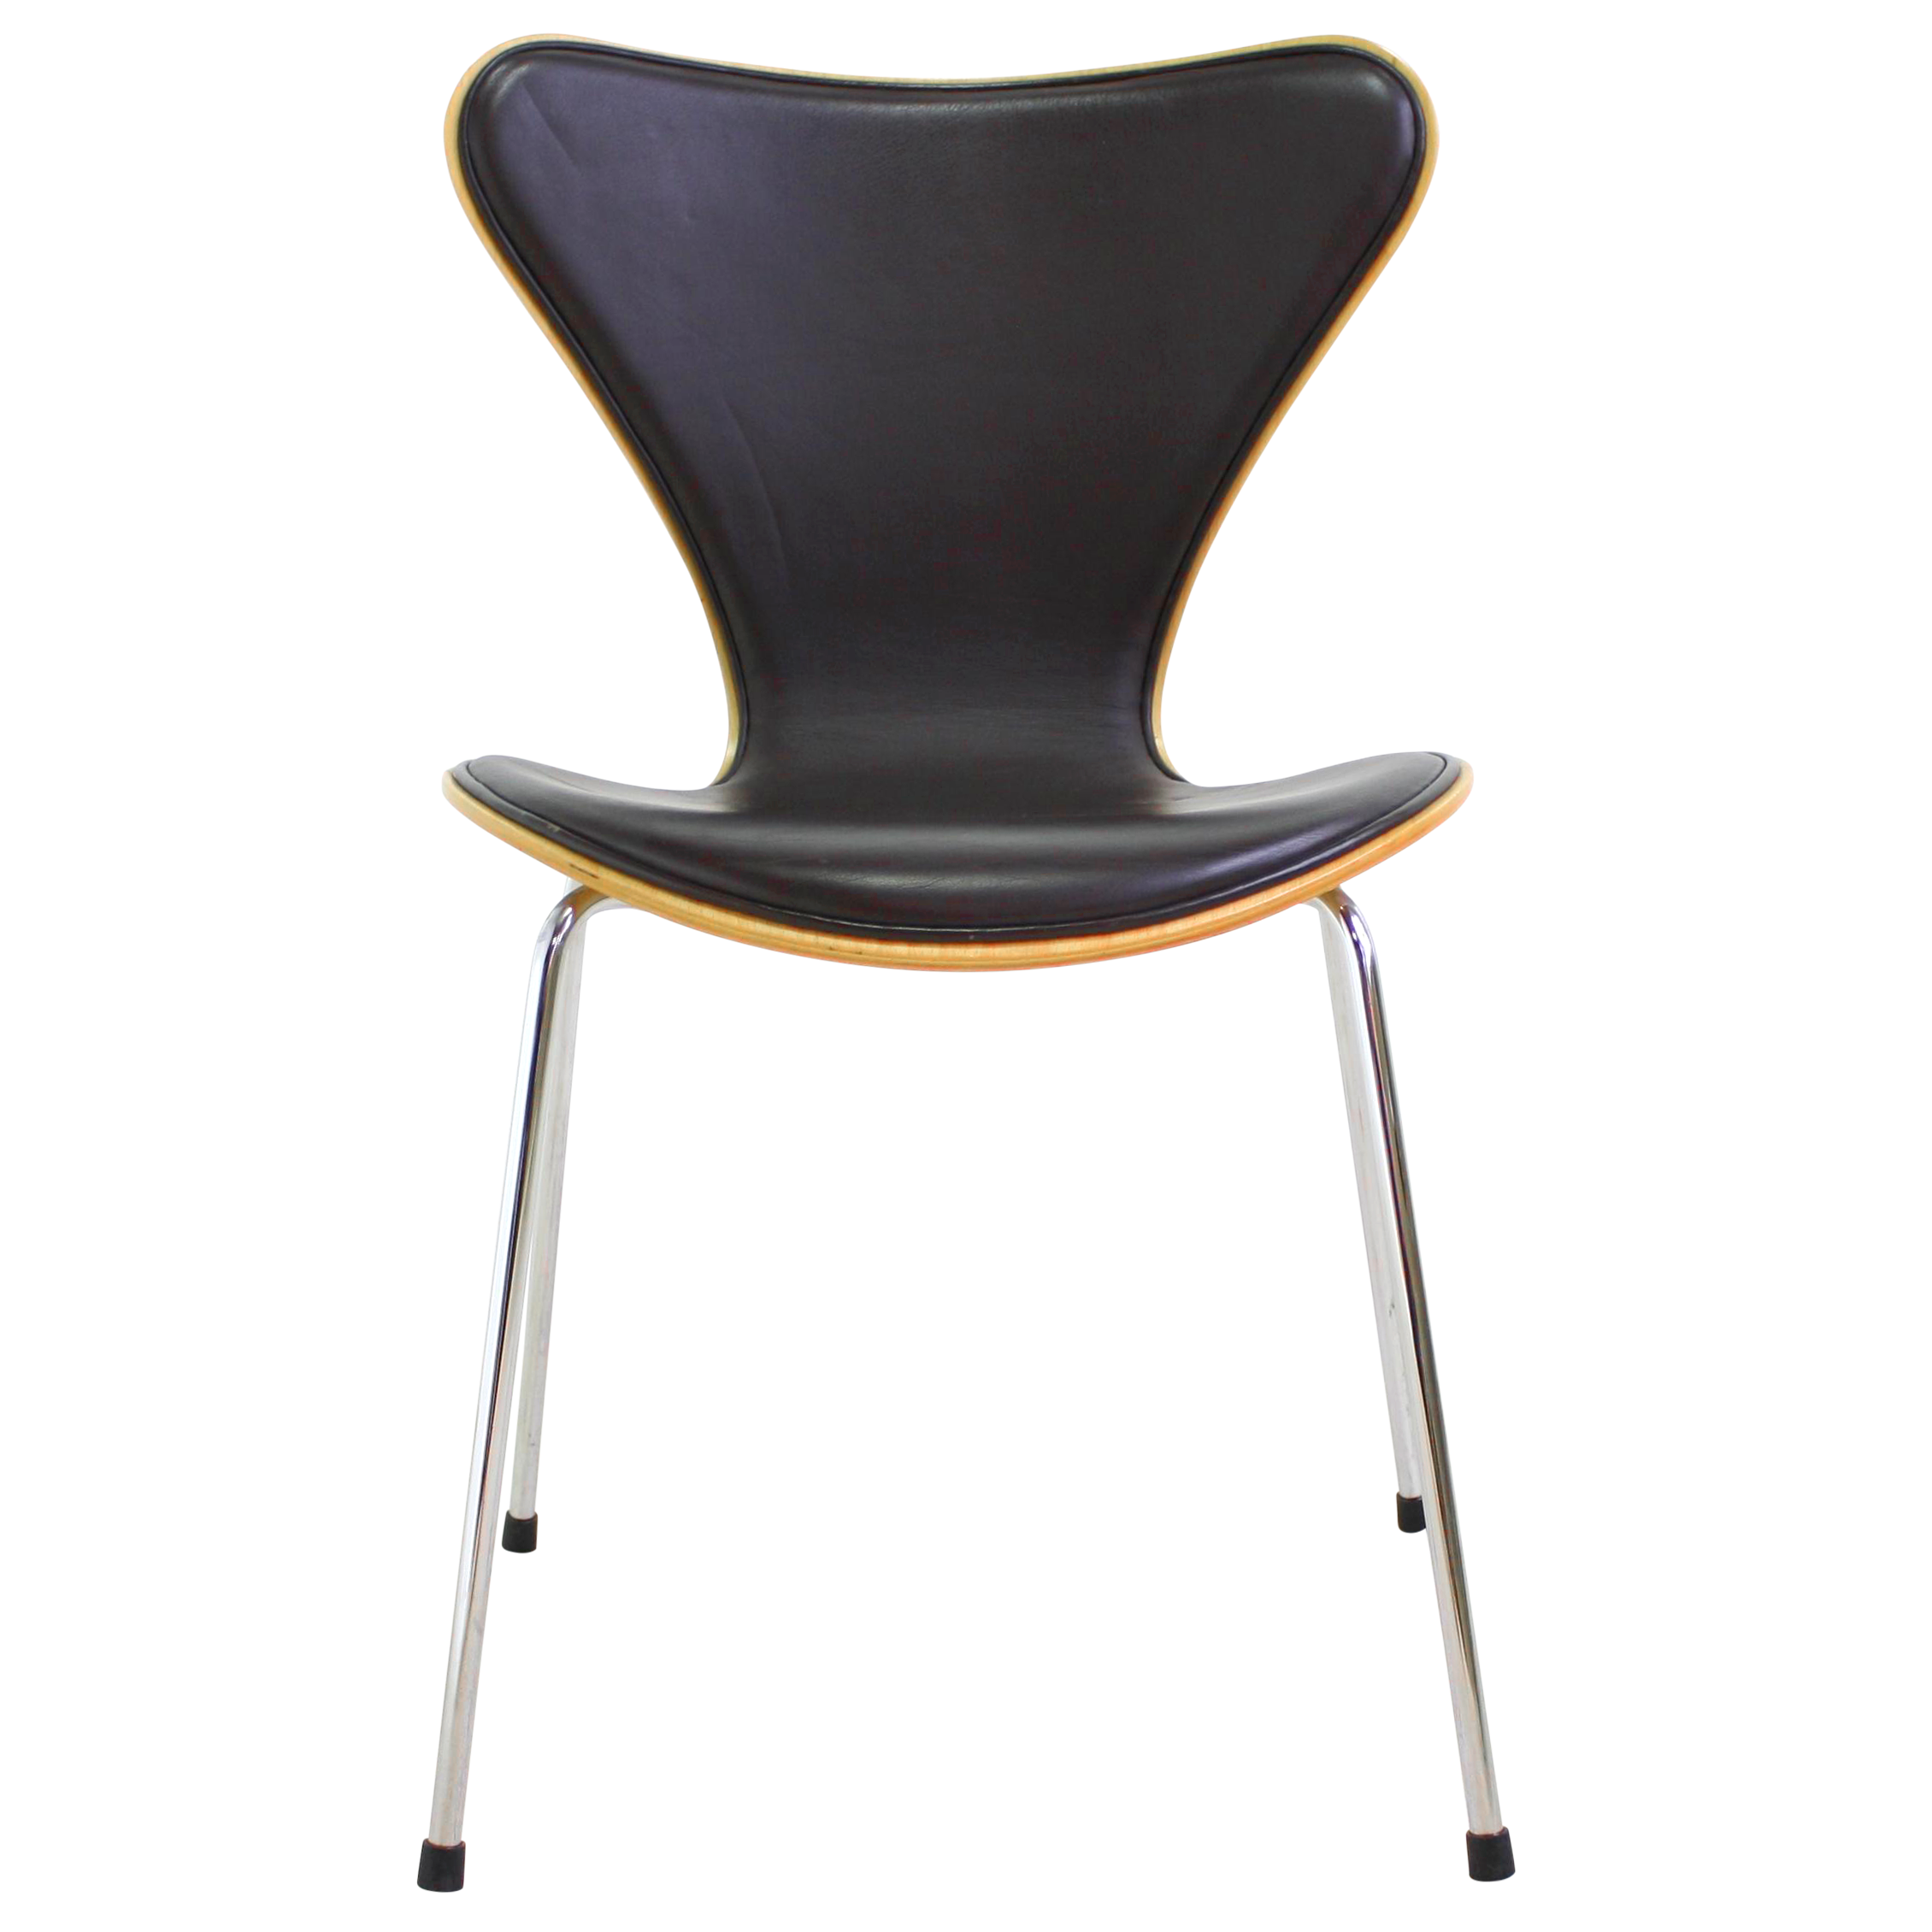 arne jacobsen series 7 brn chair chairish. Black Bedroom Furniture Sets. Home Design Ideas